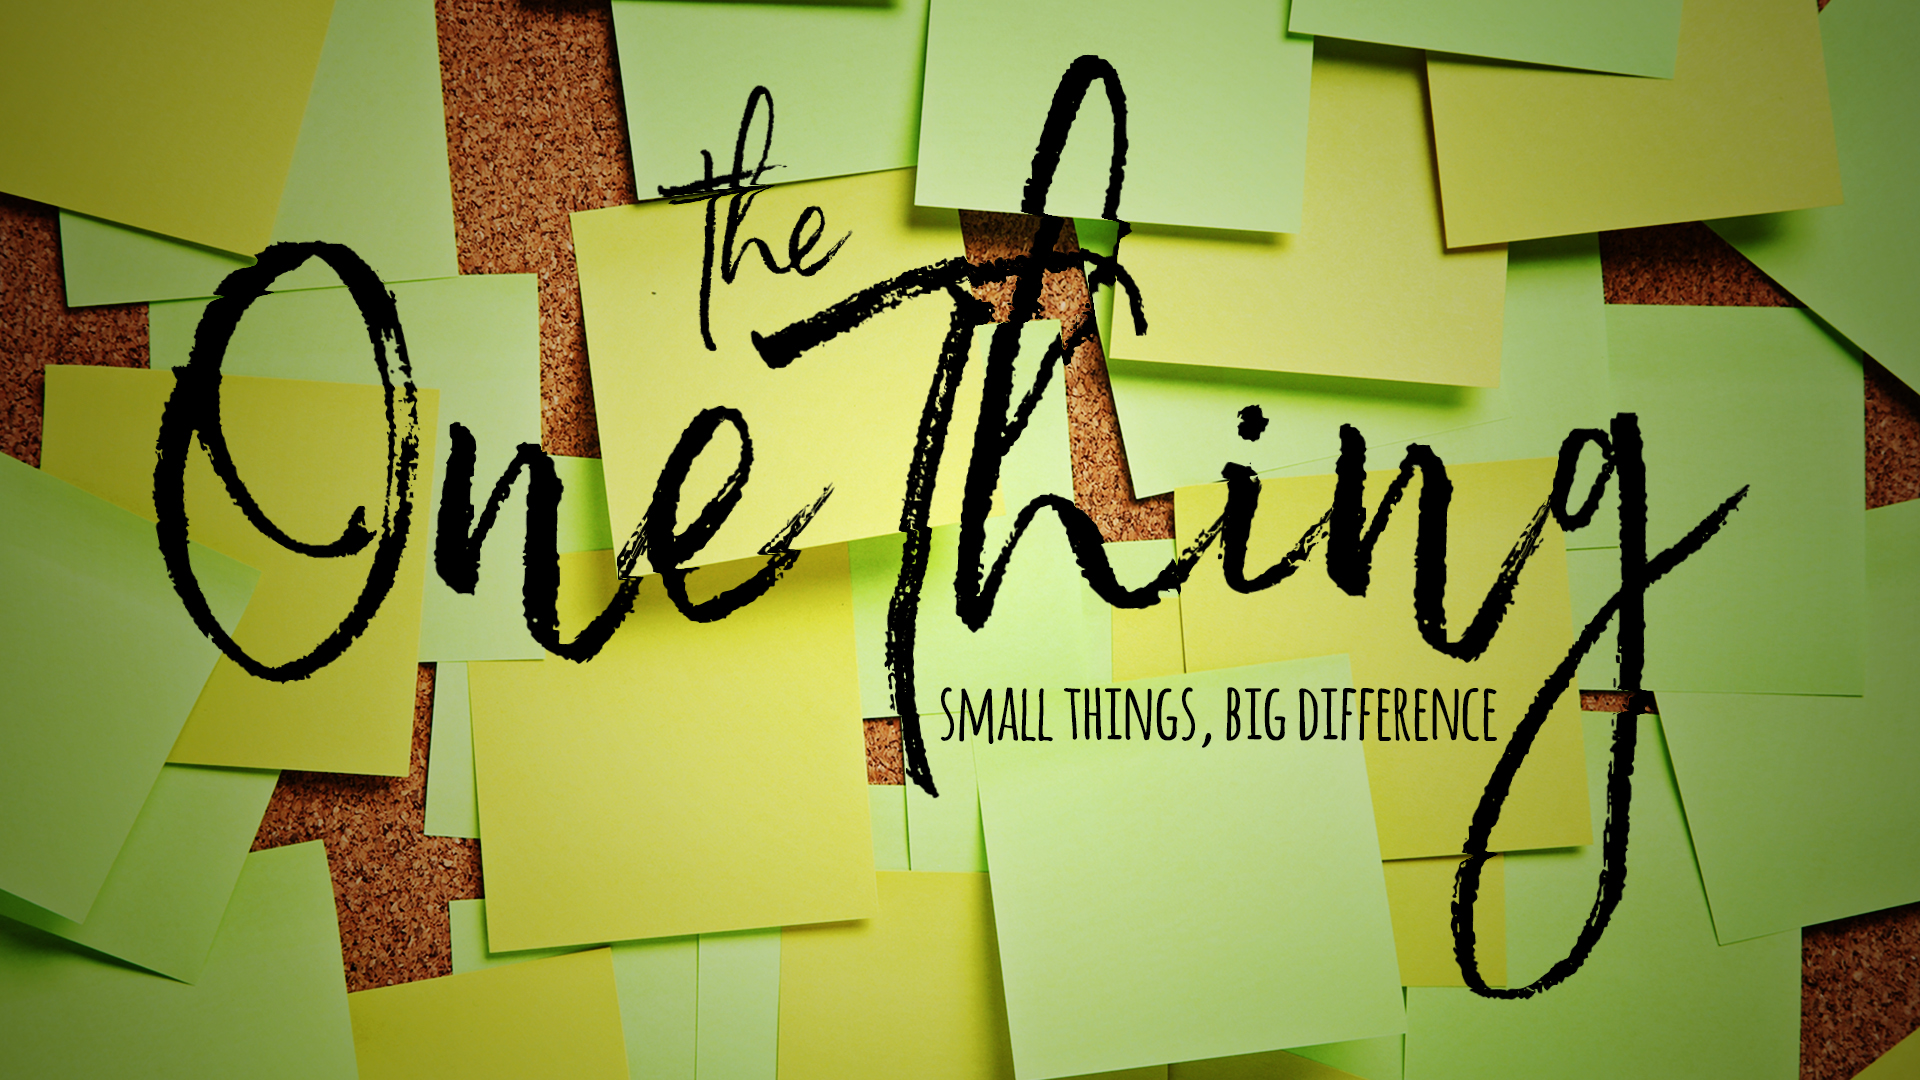 the-one-thing-1920x1080.jpg